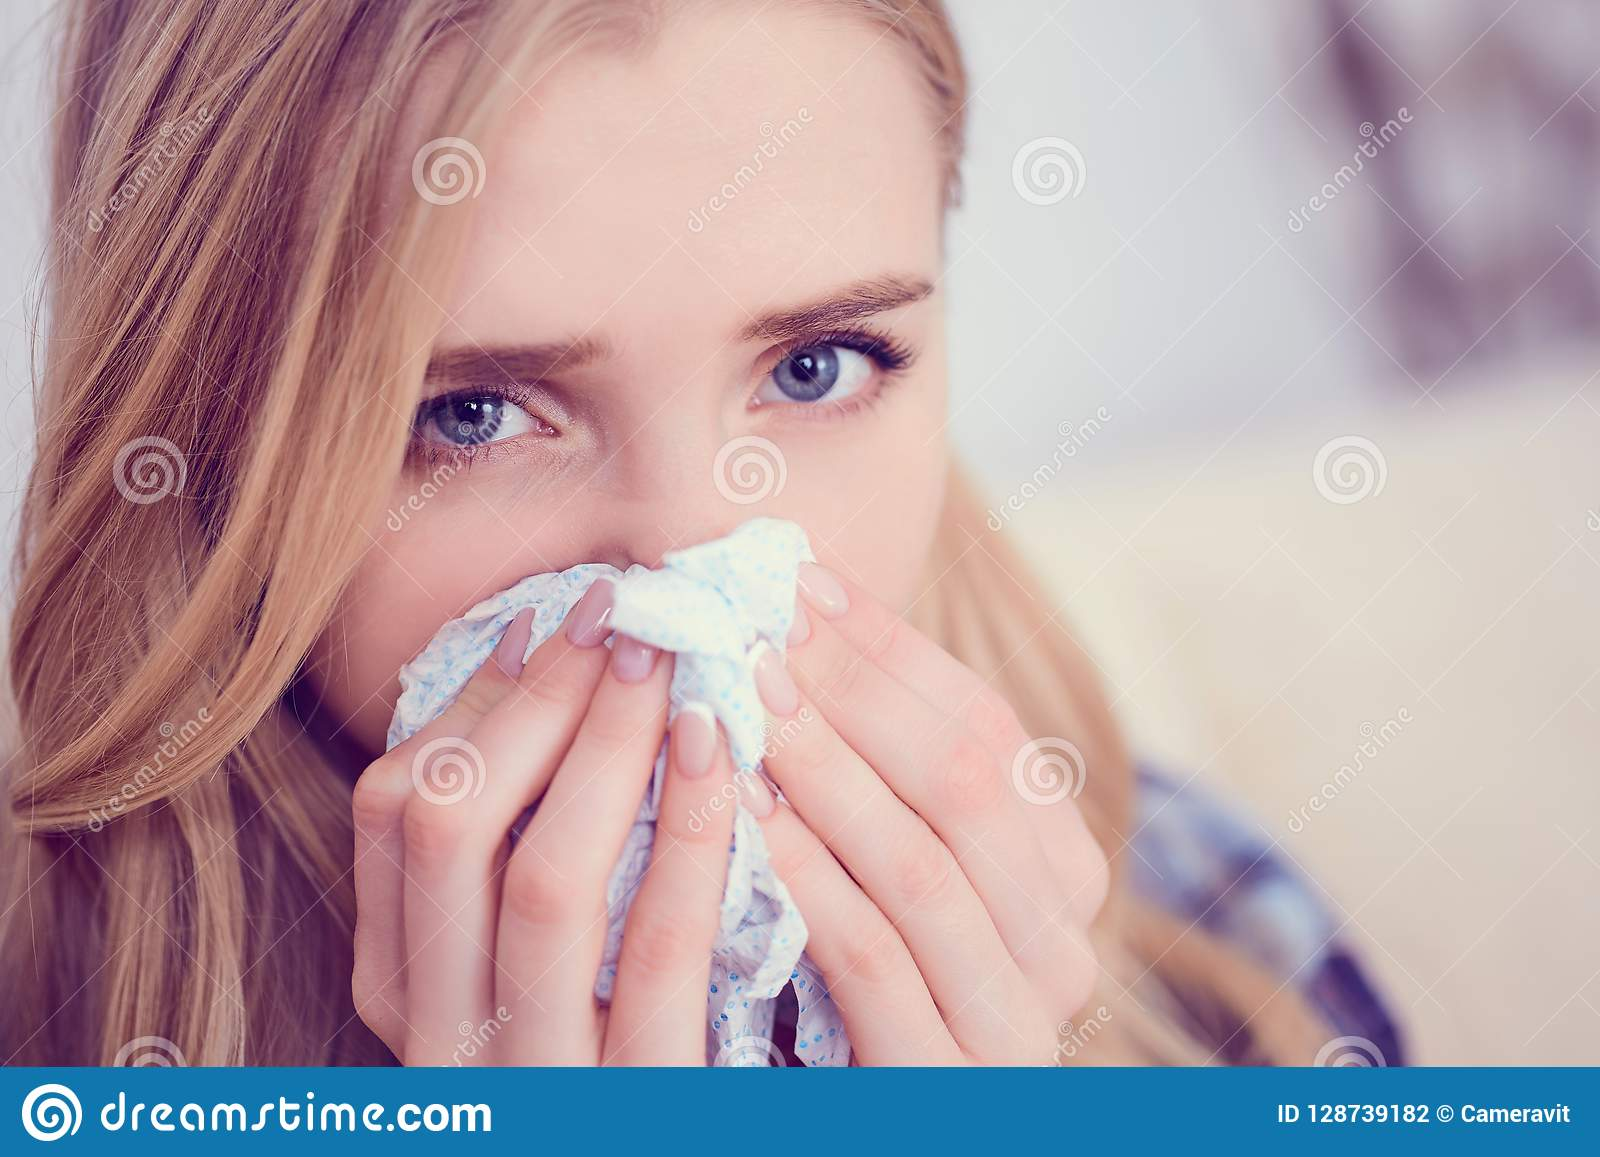 Young sick Caucasian woman sneeze at home on the sofa with a cold. Girl Used tissue paper blowing her nose. Medical and